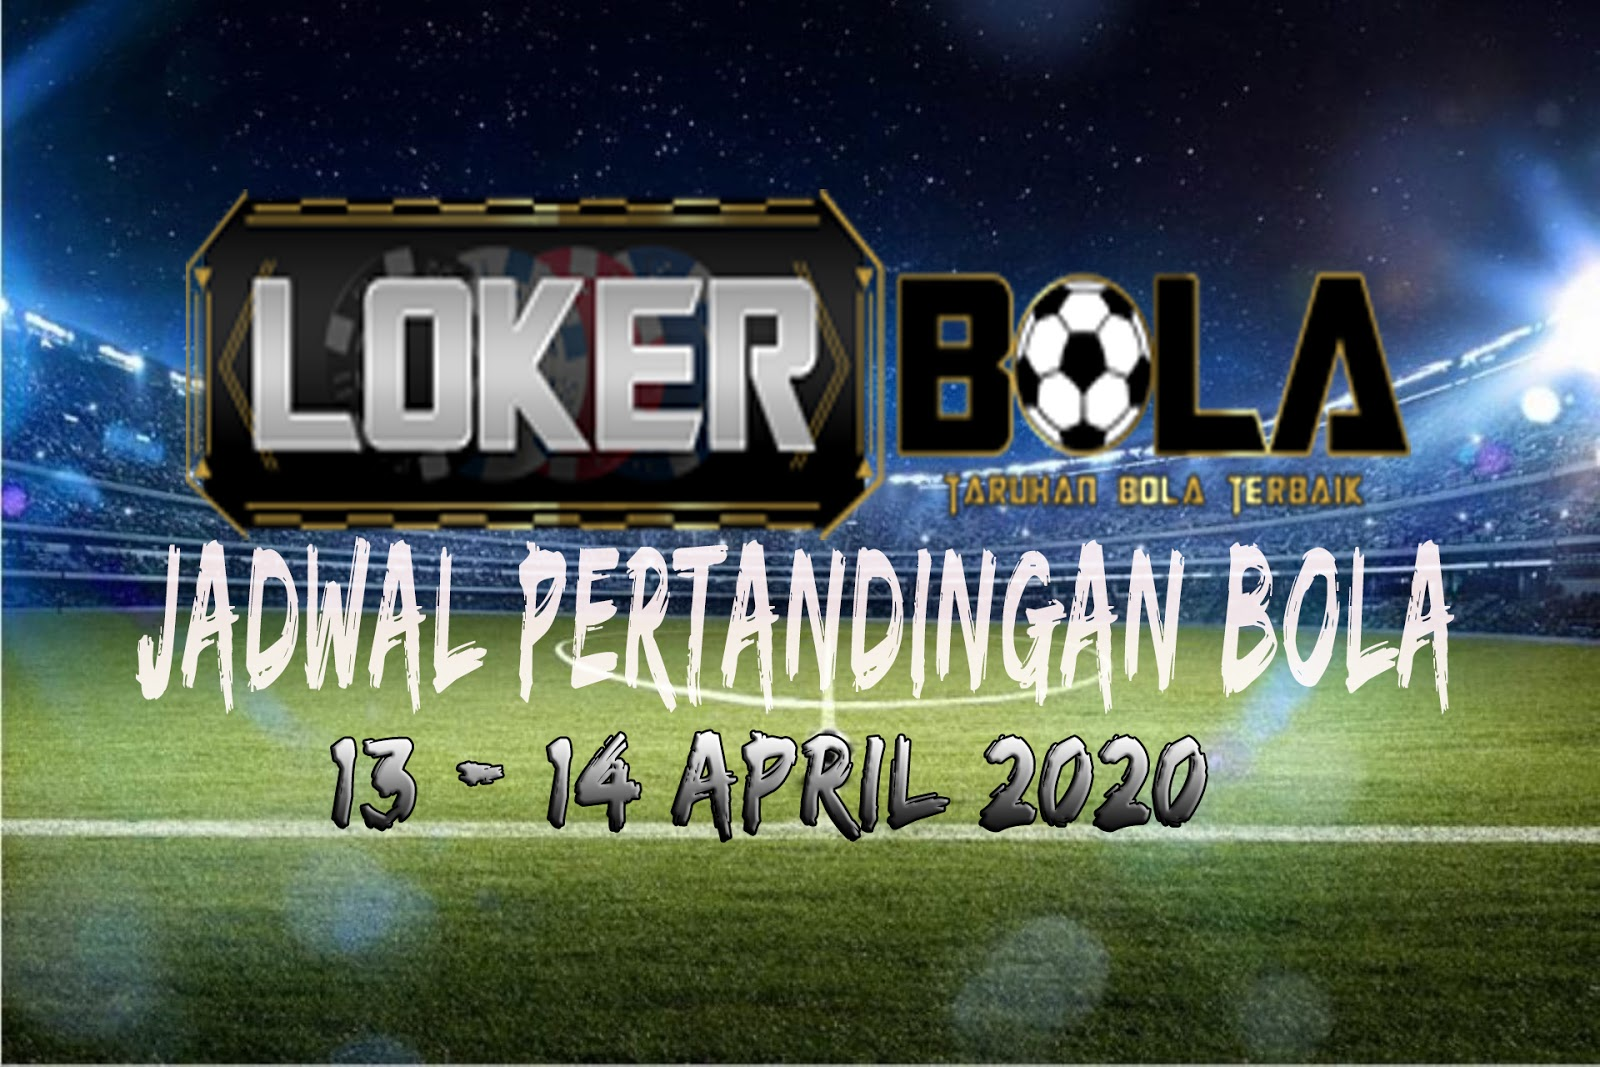 JADWAL PERTANDINGAN BOLA 13 – 14 APRIL 2020